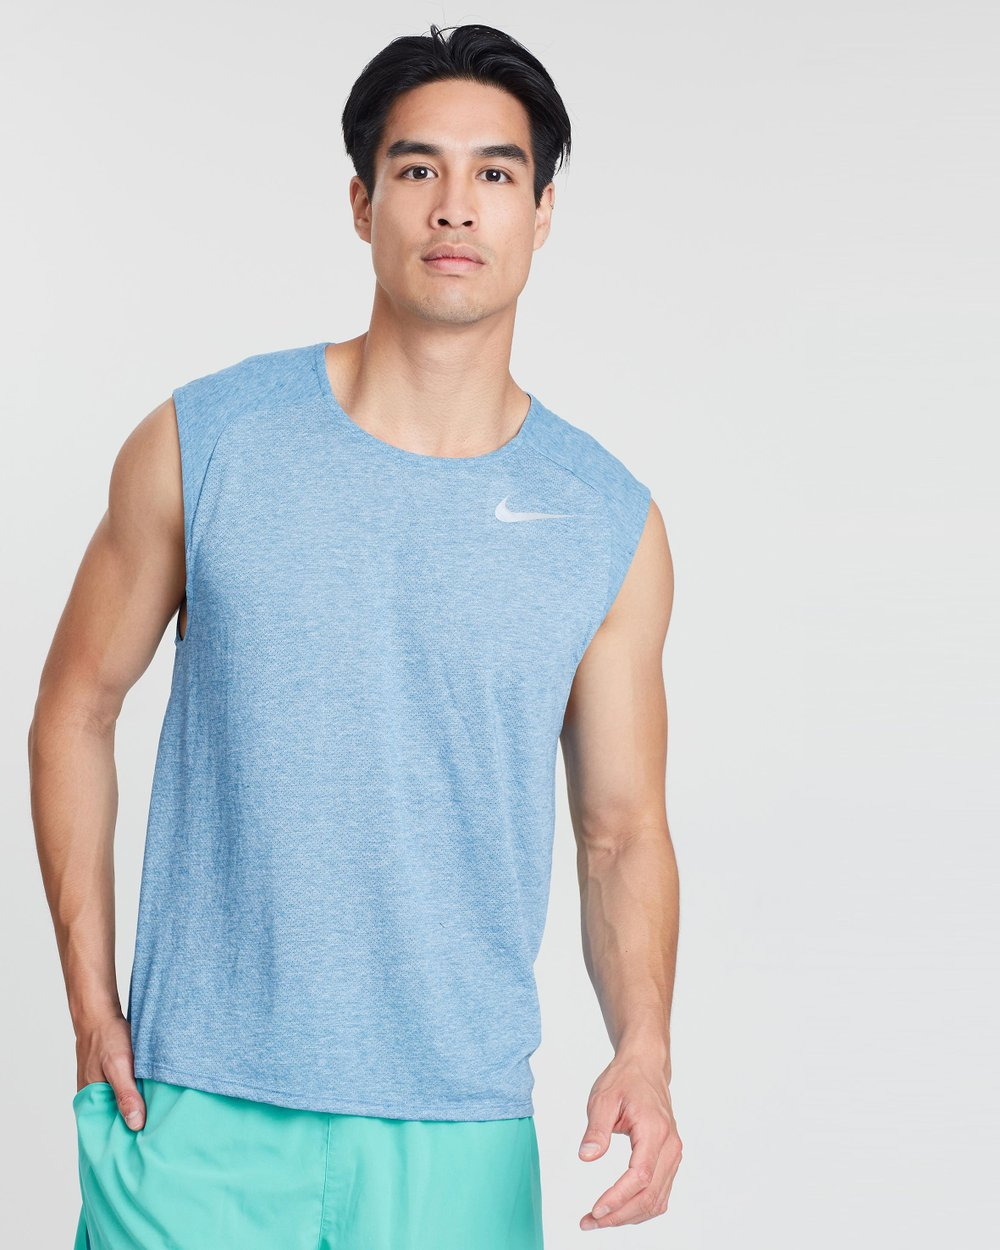 e64243b4c2897 Breathe Rise 365 Sleeveless Top by Nike Online